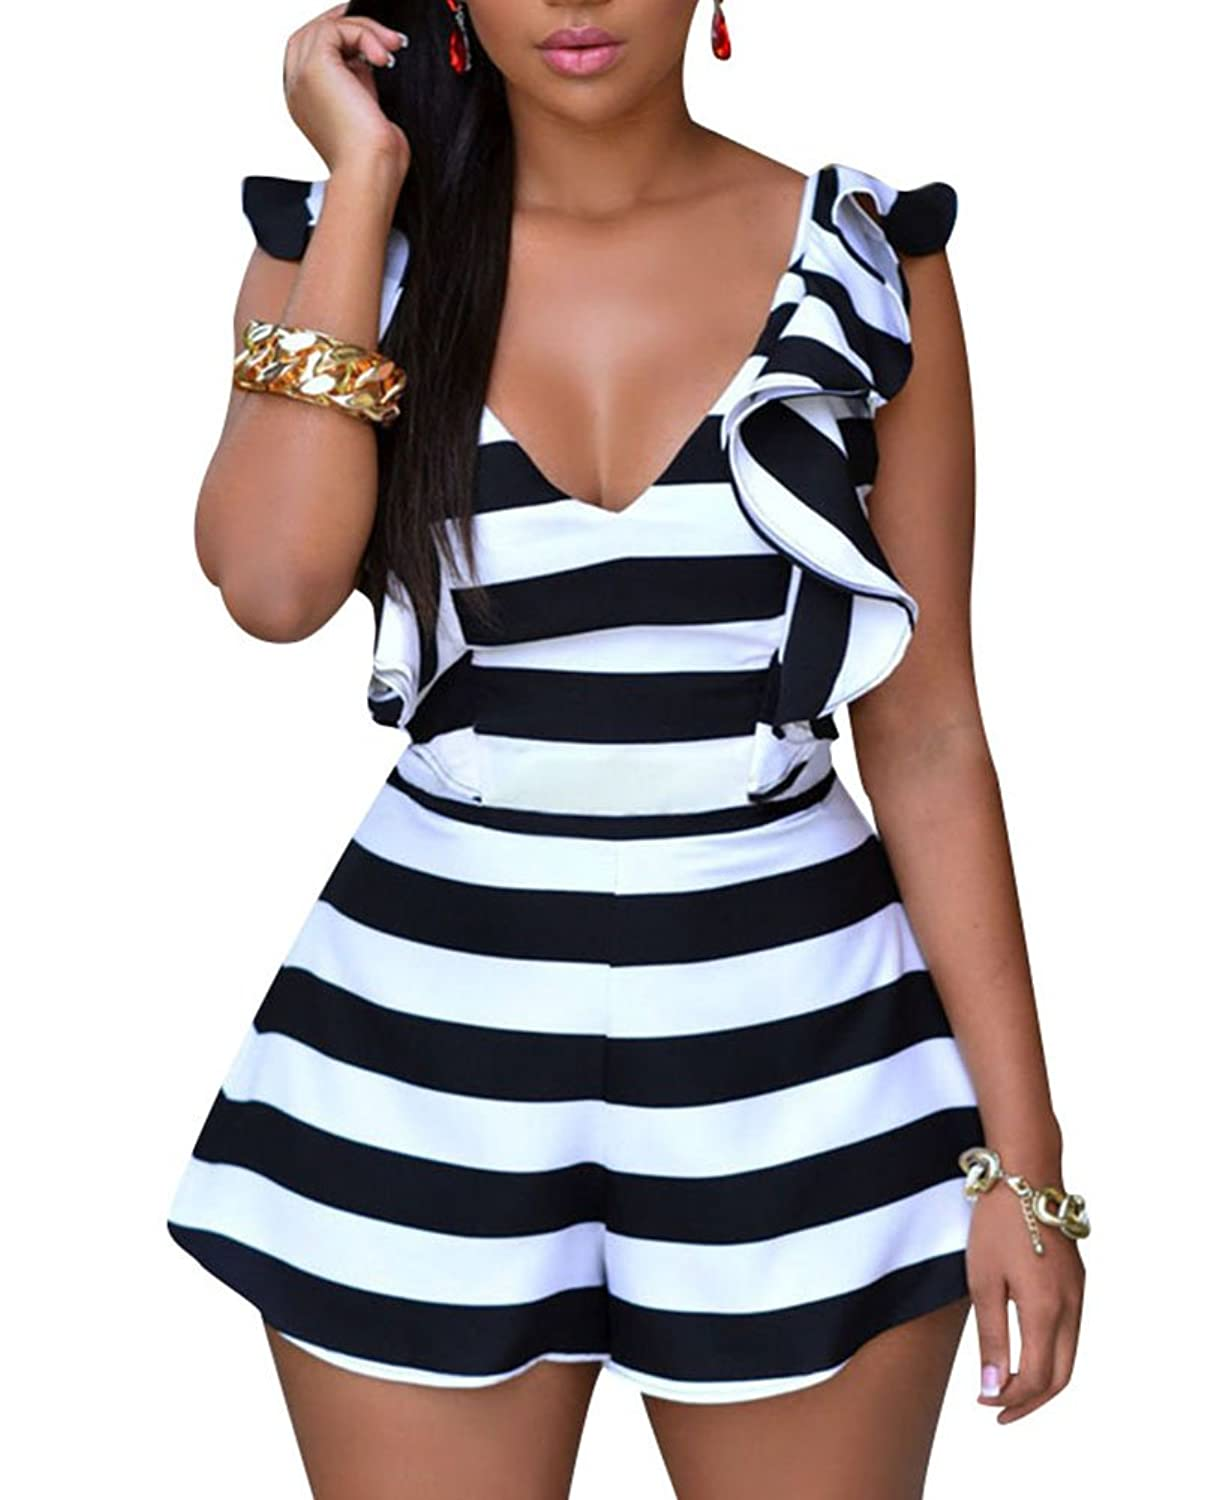 Cfanny Women's Stripes Ruffle Sliky Backless Romper Jumpsuit Playsuit